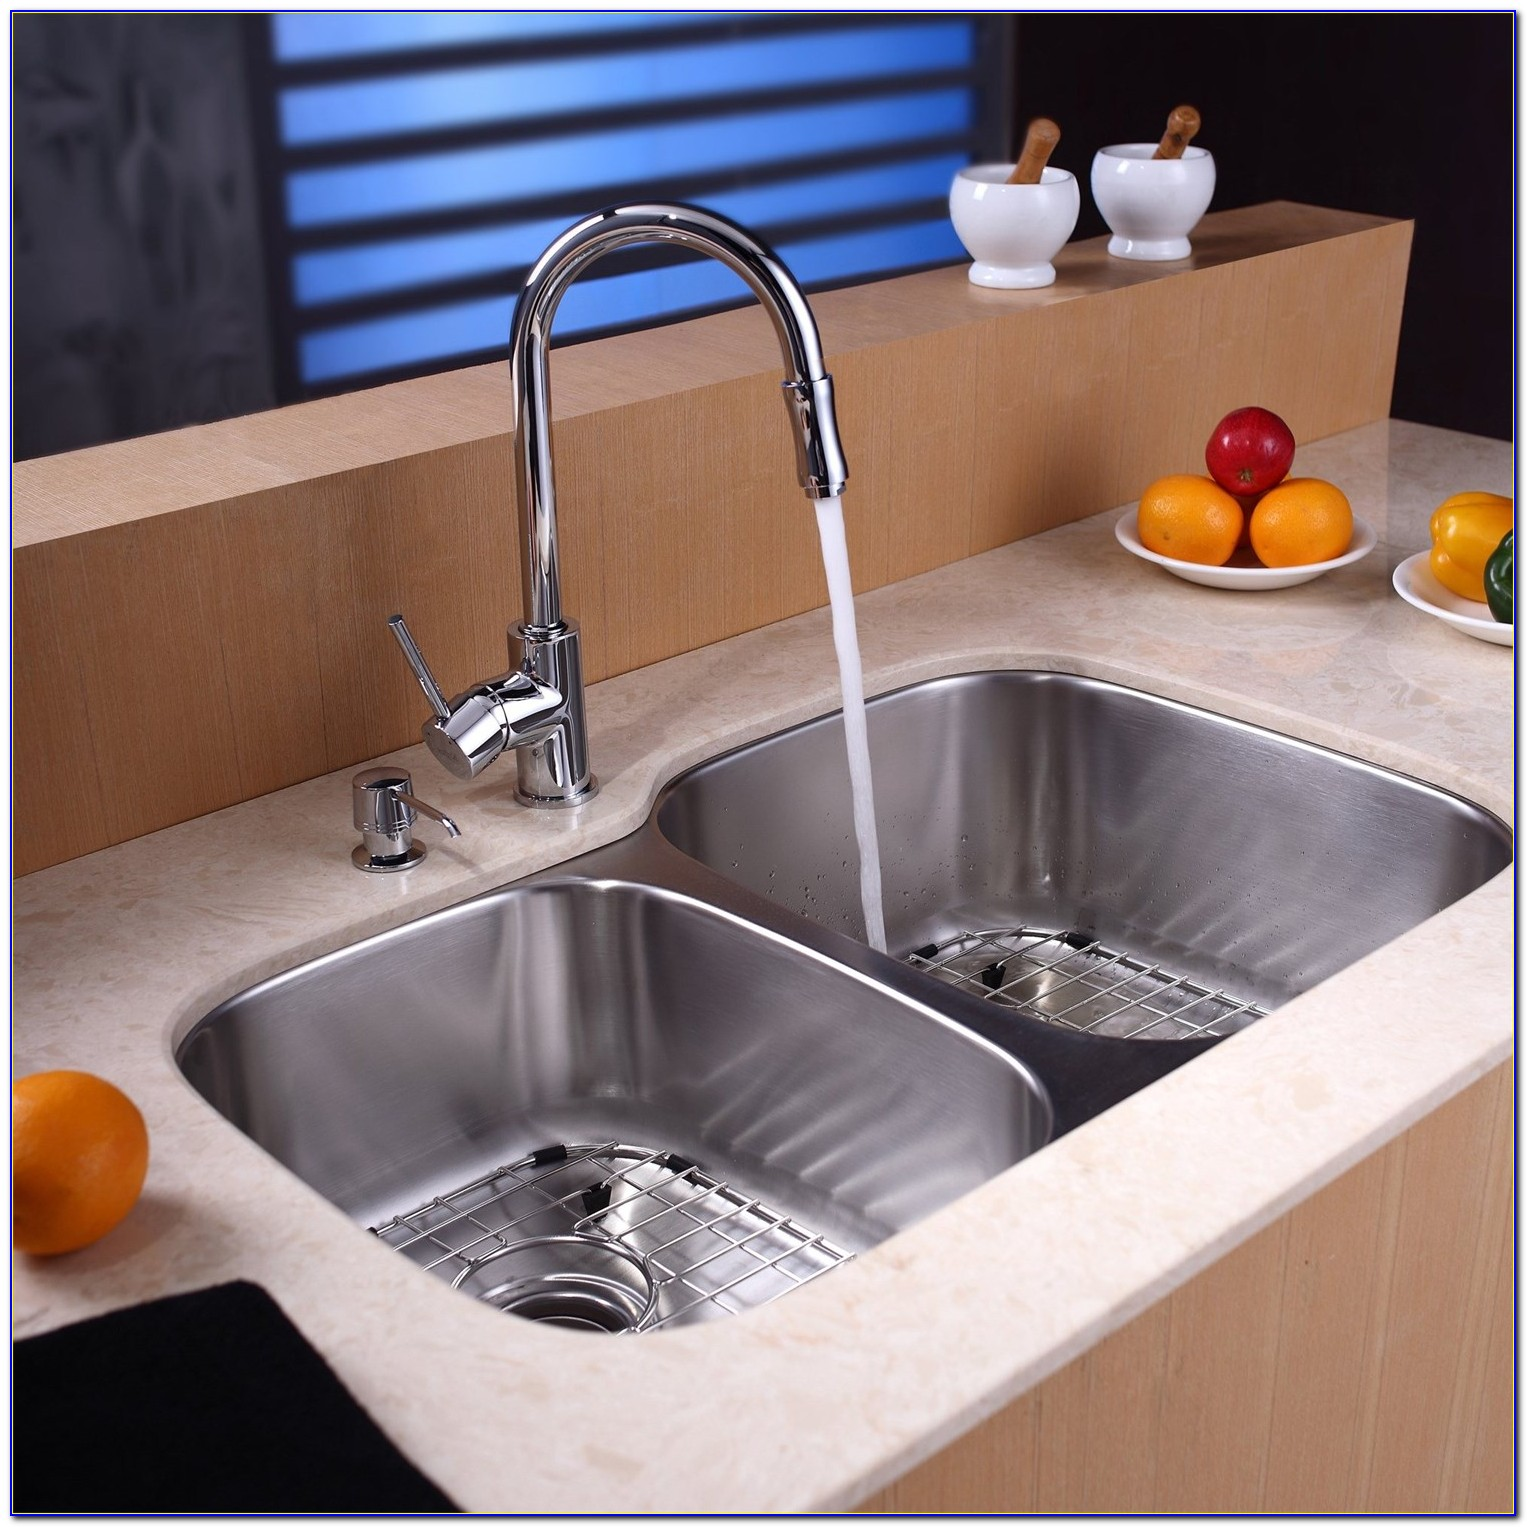 Kraus Sinks And Faucets